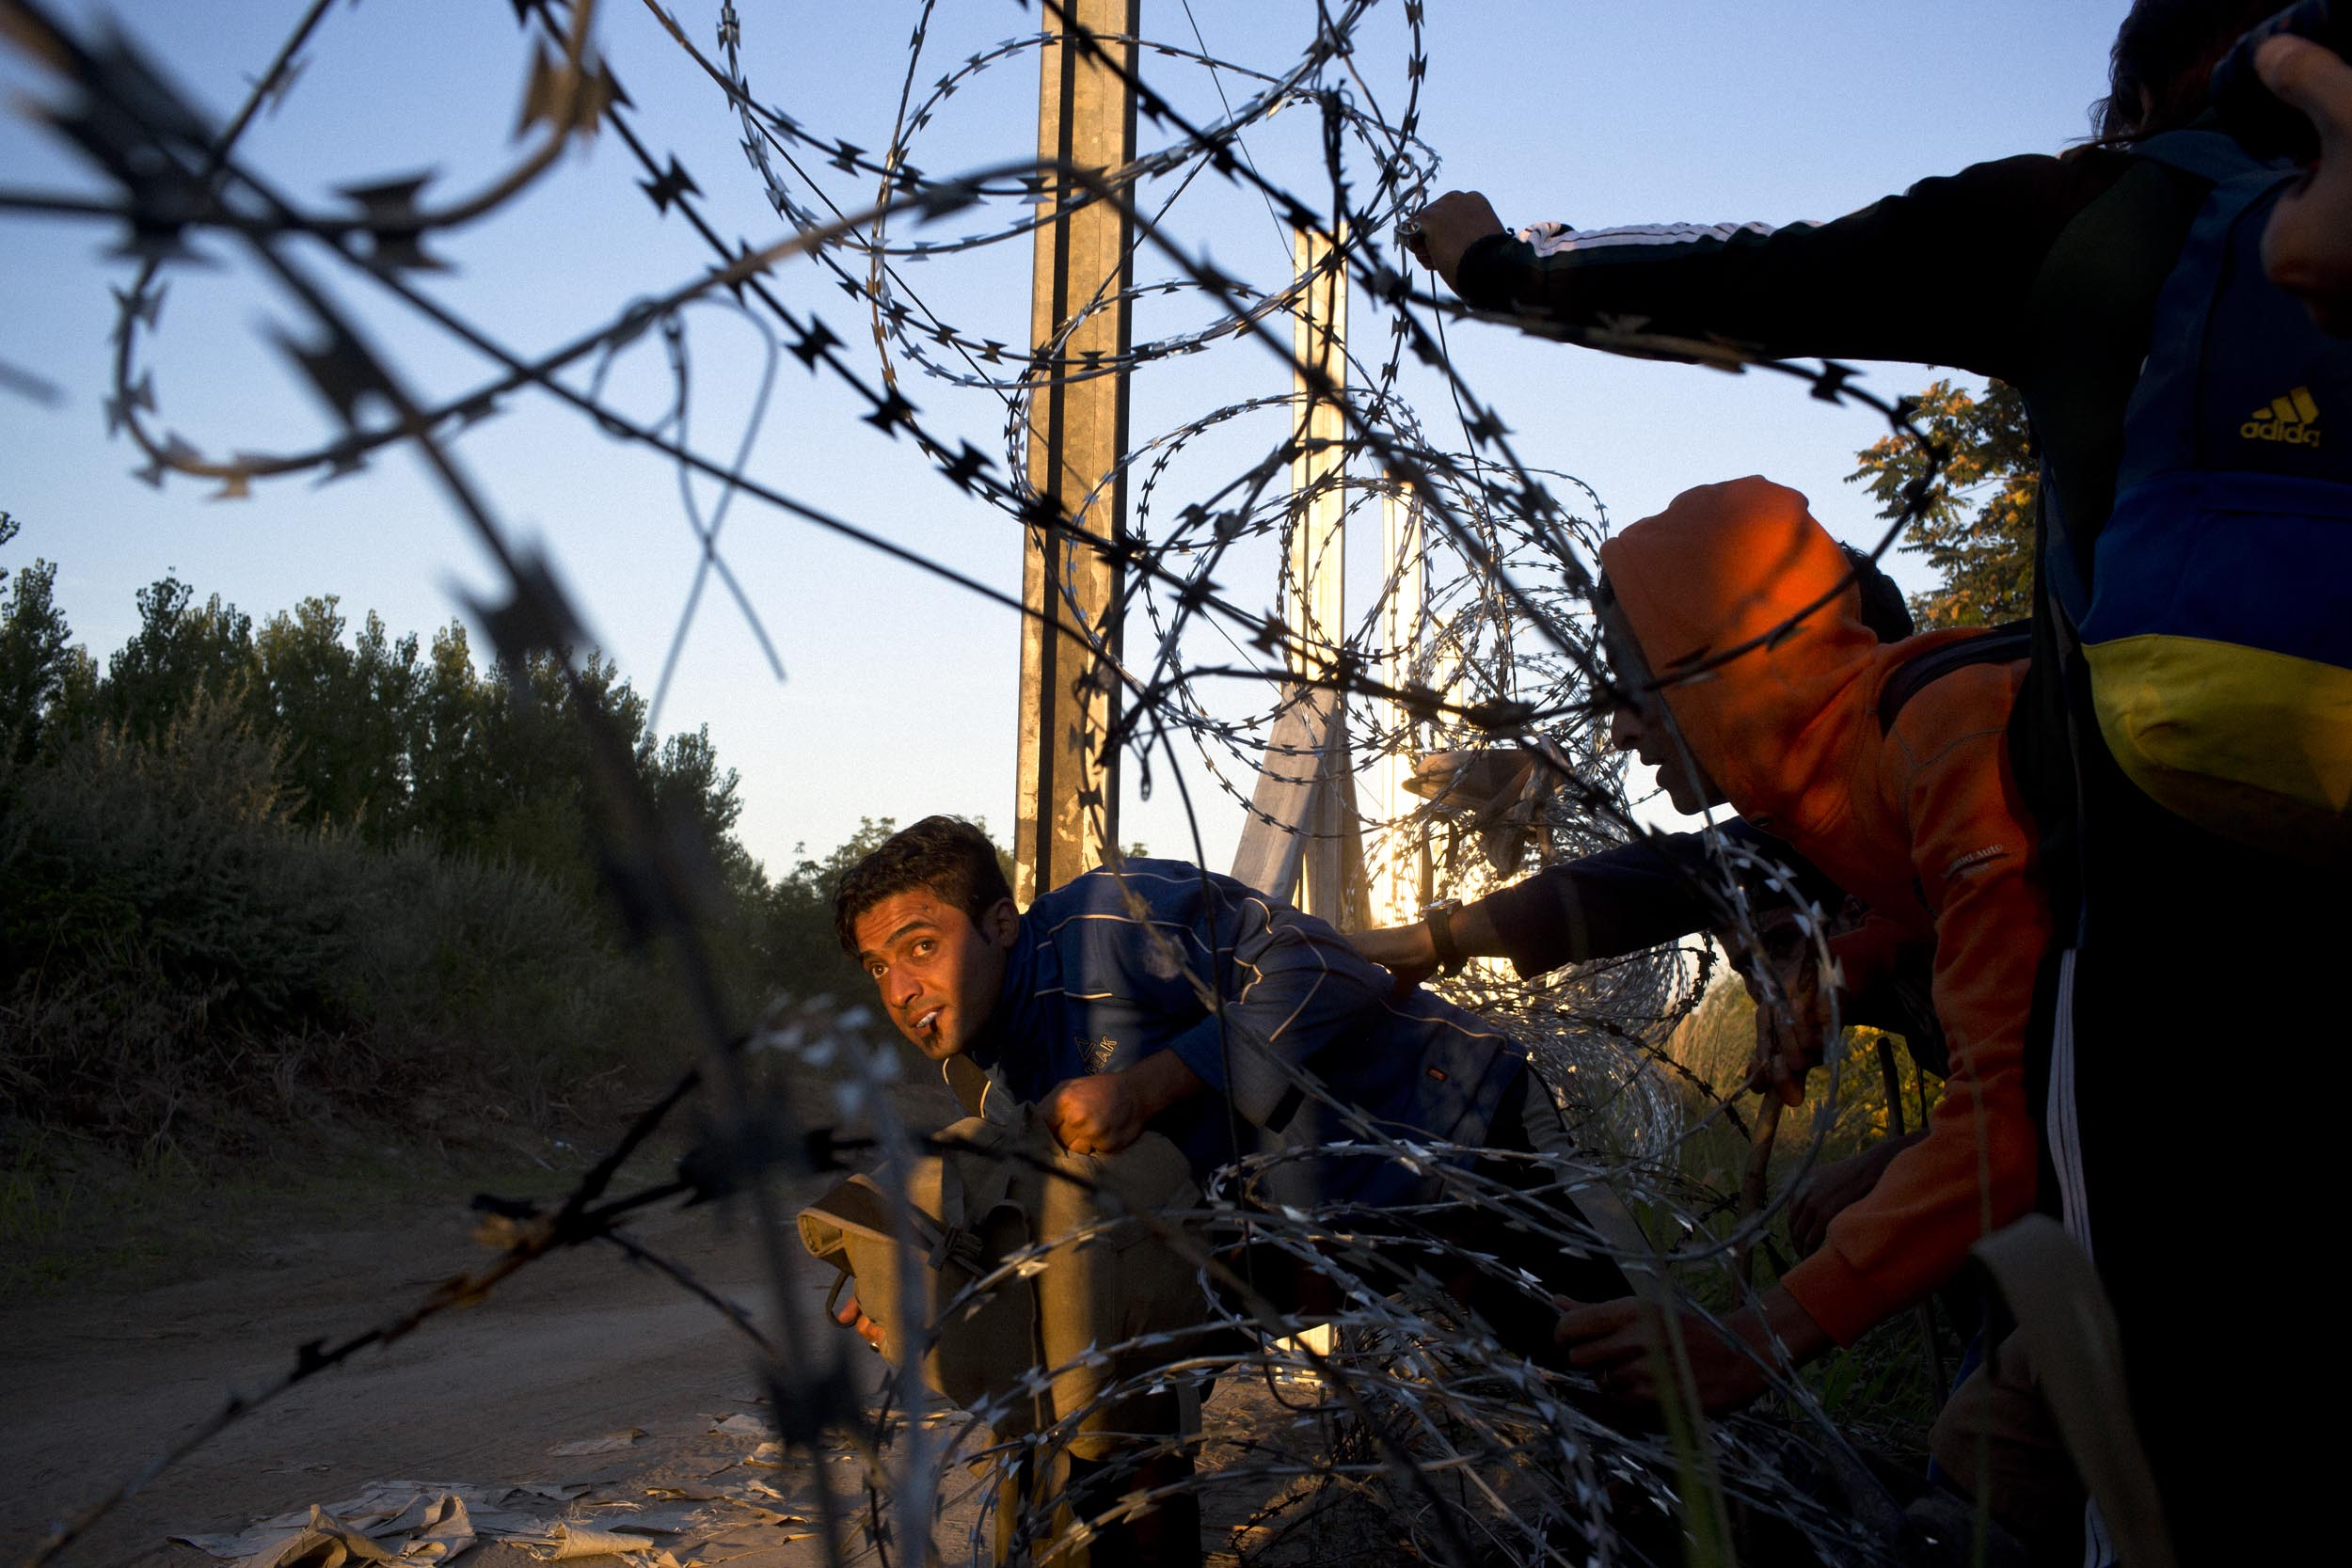 Horgoš, Serbia. Refugees sneak through a border fence to evade patroling Hungarian police at the Serbia/Hungary border.